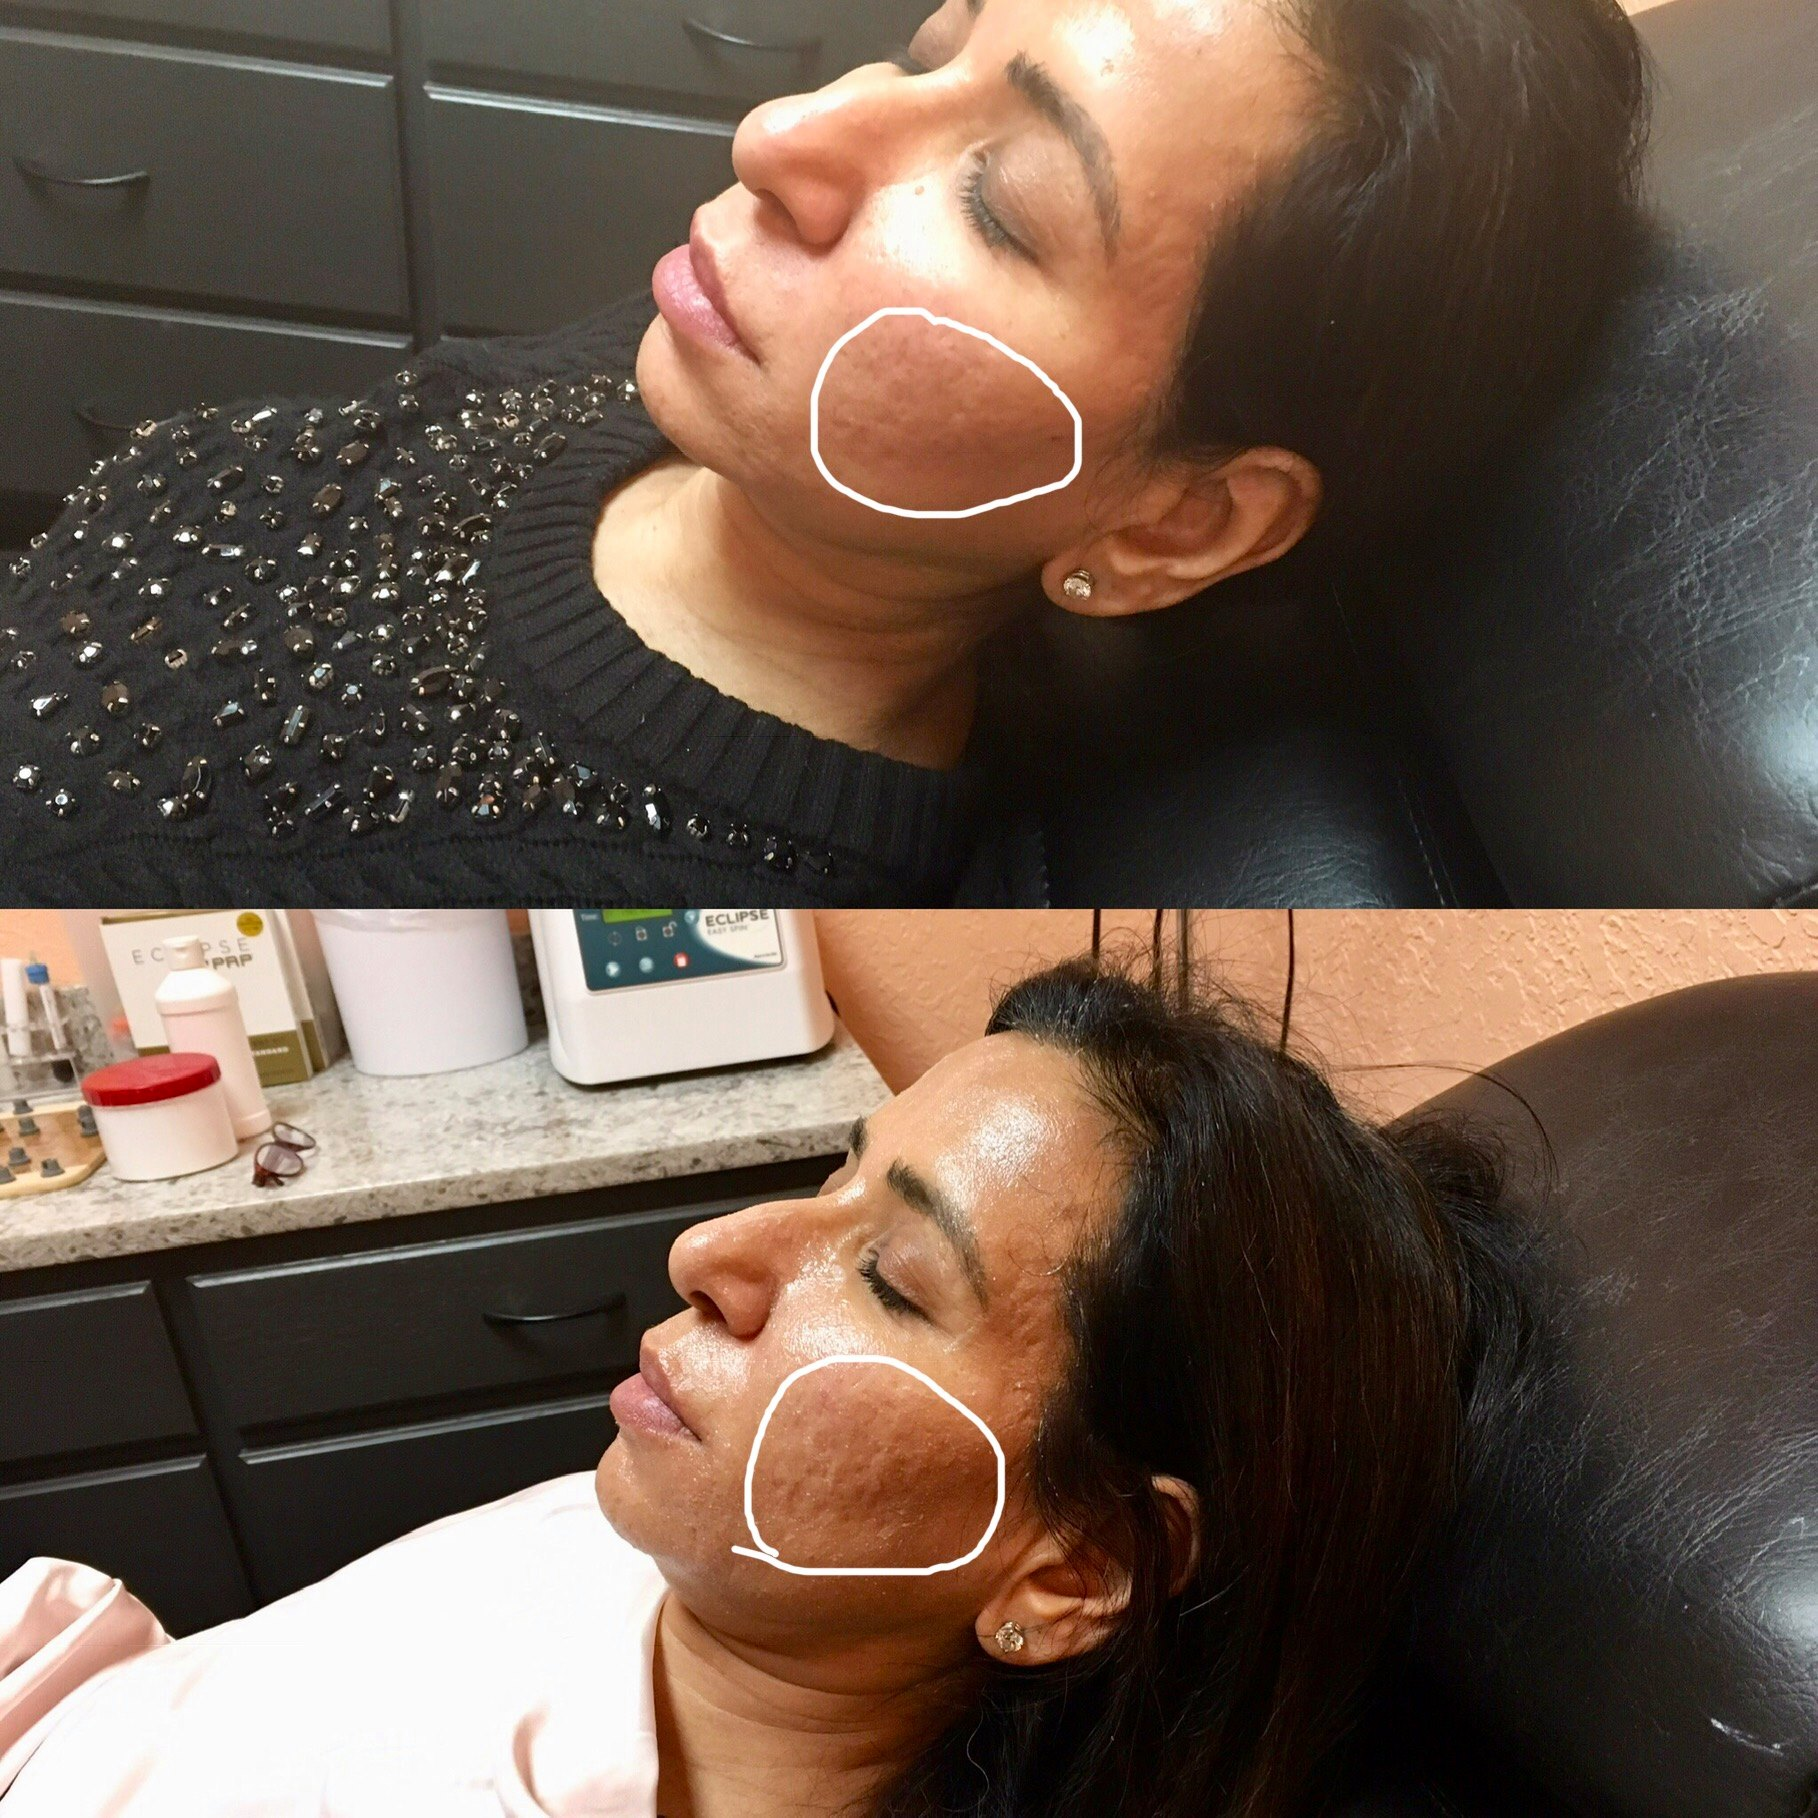 Microneedling at bodyrx louisville